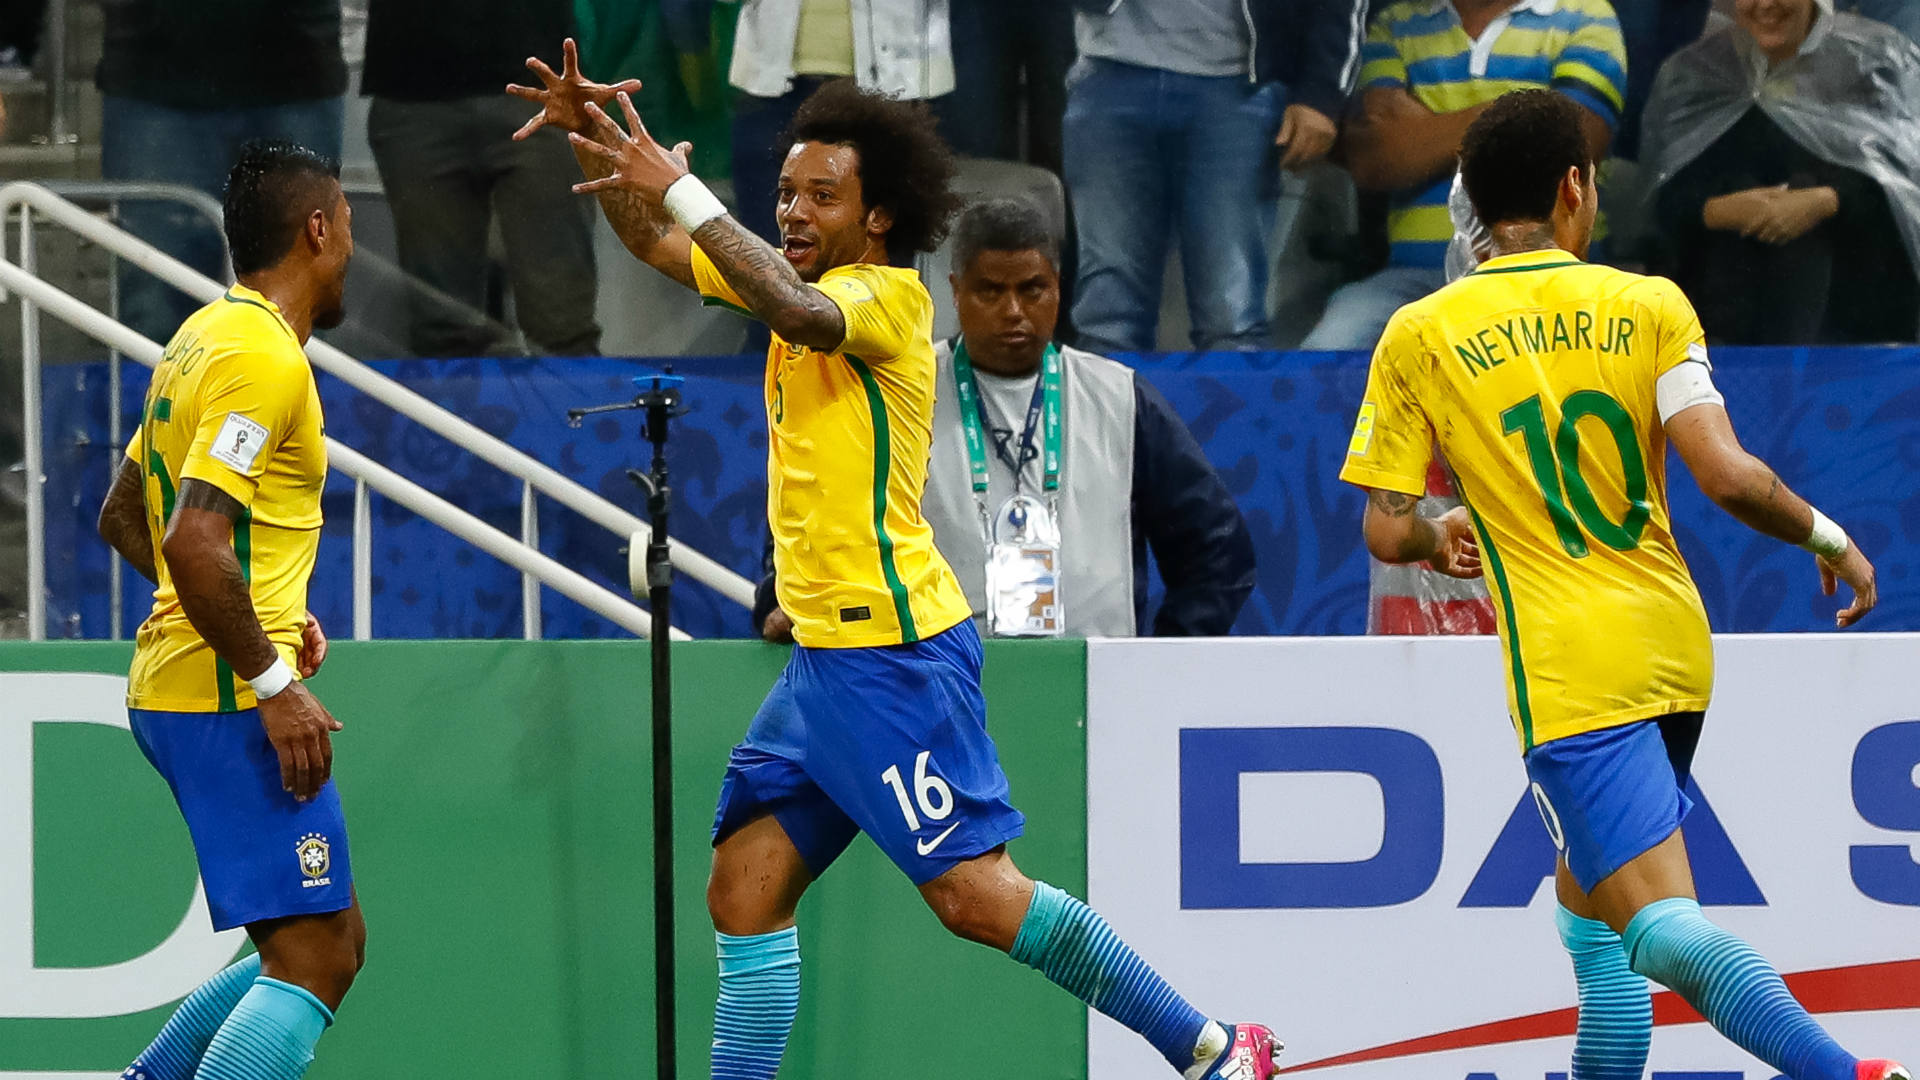 India rise to 101, Brazil back on top — Federation Internationale de Football Association rankings